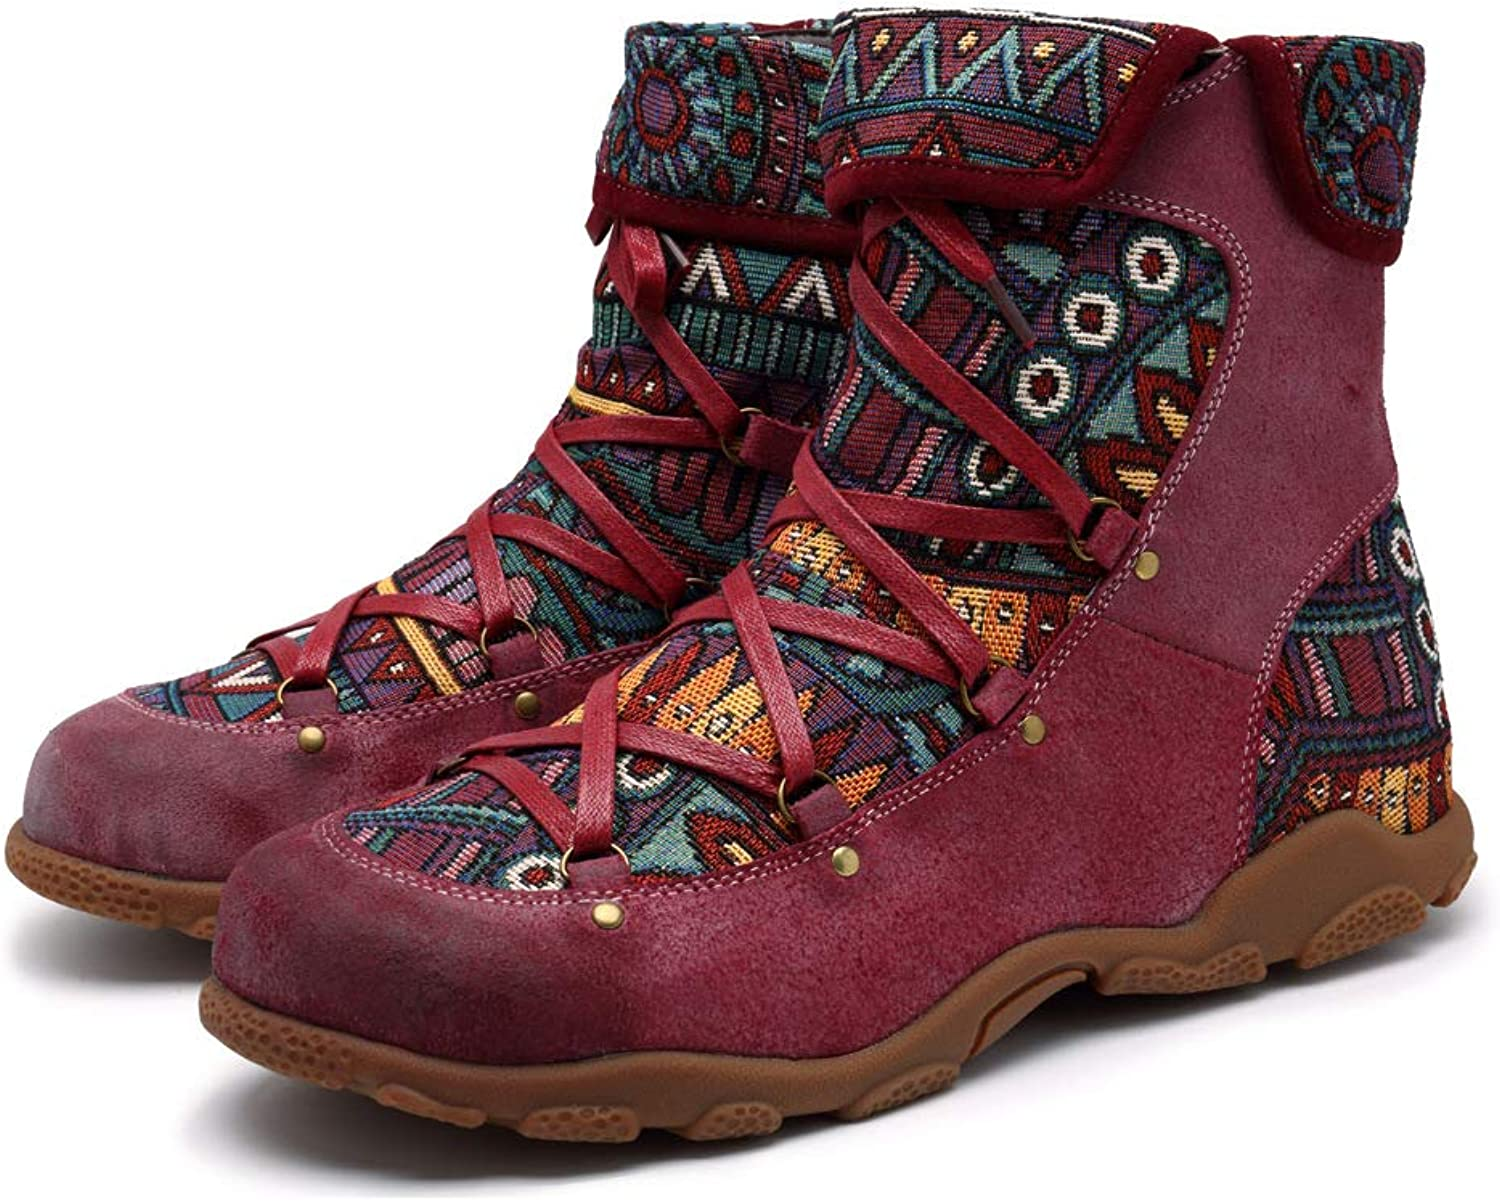 Crazycatz Womens Bohemian Aztec Pattern Flat Leather Boots Handmade